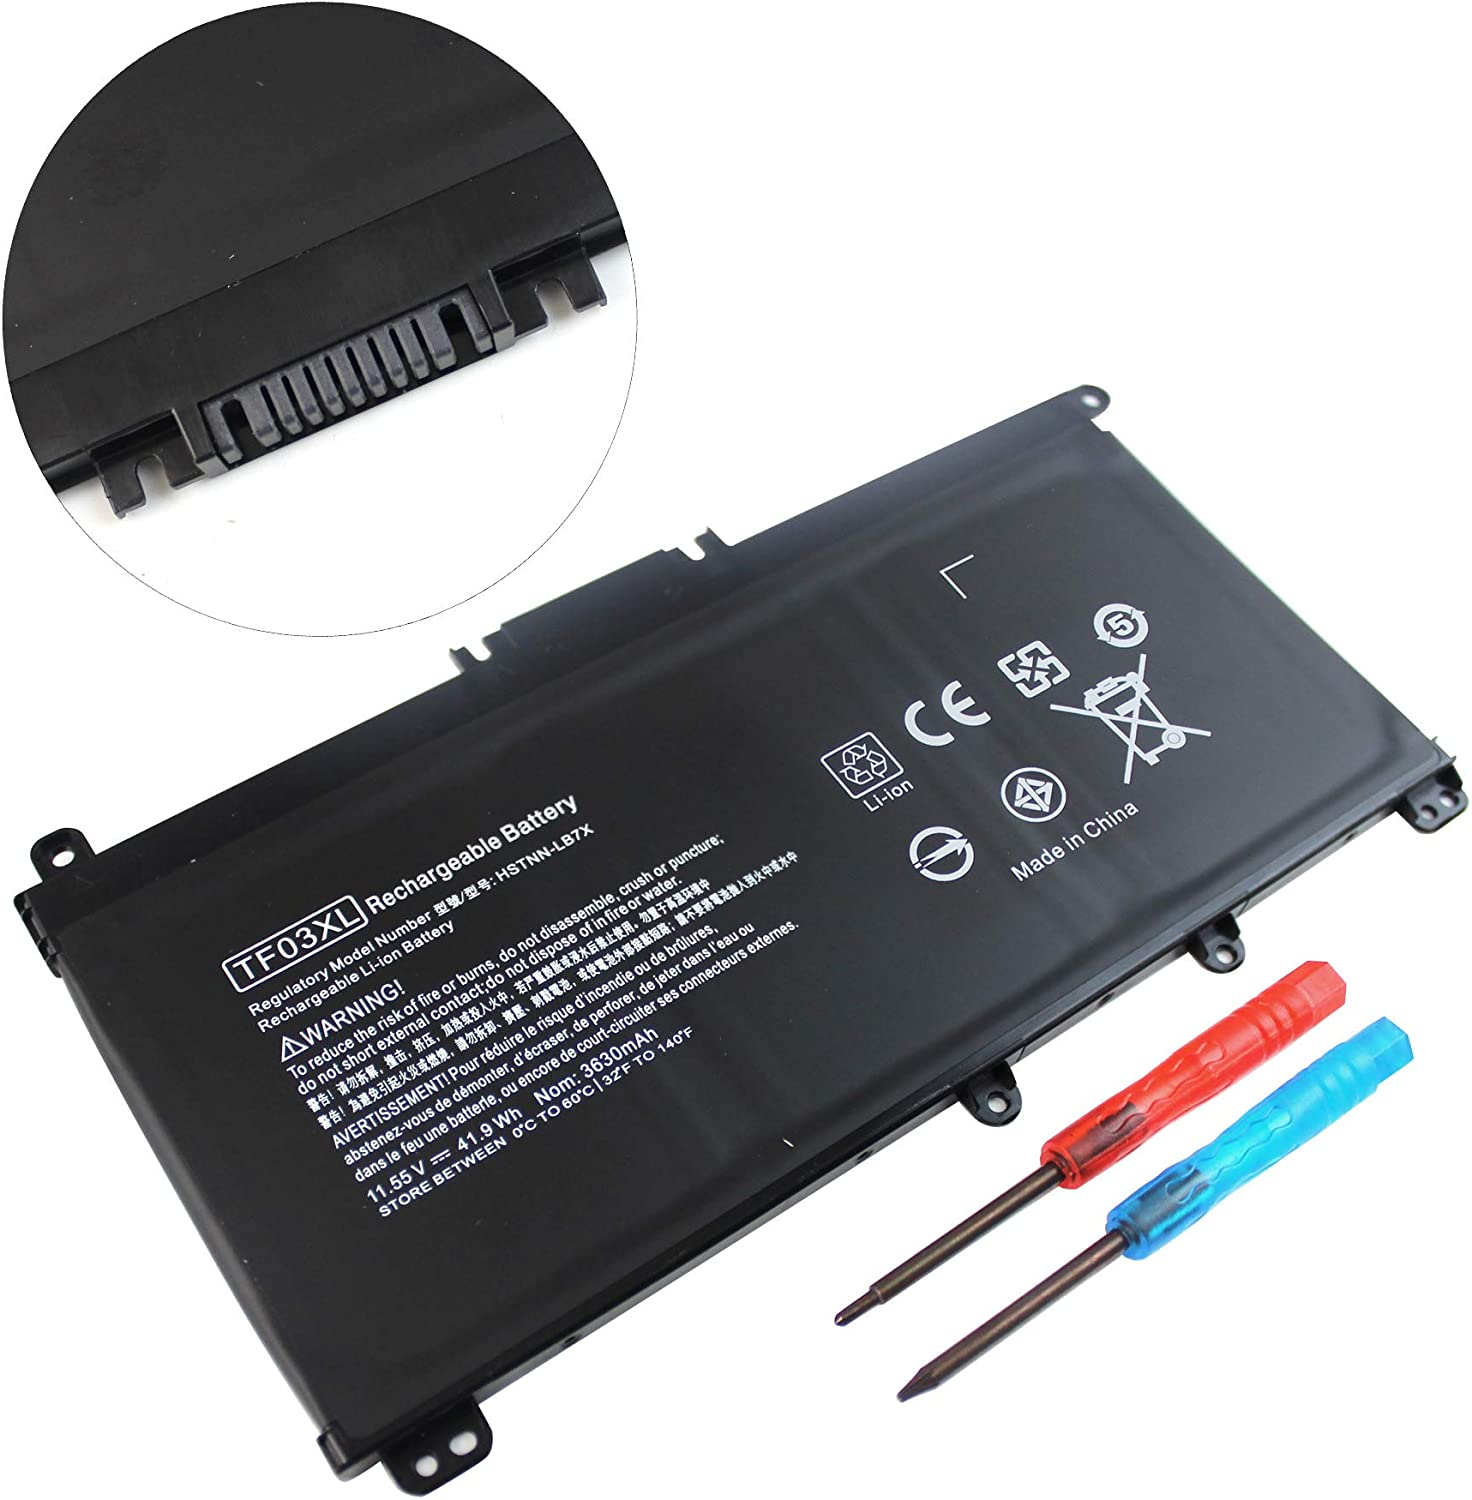 Vinpera TF03XL Battery for HP Pavilion 15-CC 15-CD Series 15-cc055od 15-cd040wm 15-cc152od 15-cc060wm 17-ar050wm; 920046-421 920070-855 HSTNN-LB7J HSTNN-LB7L